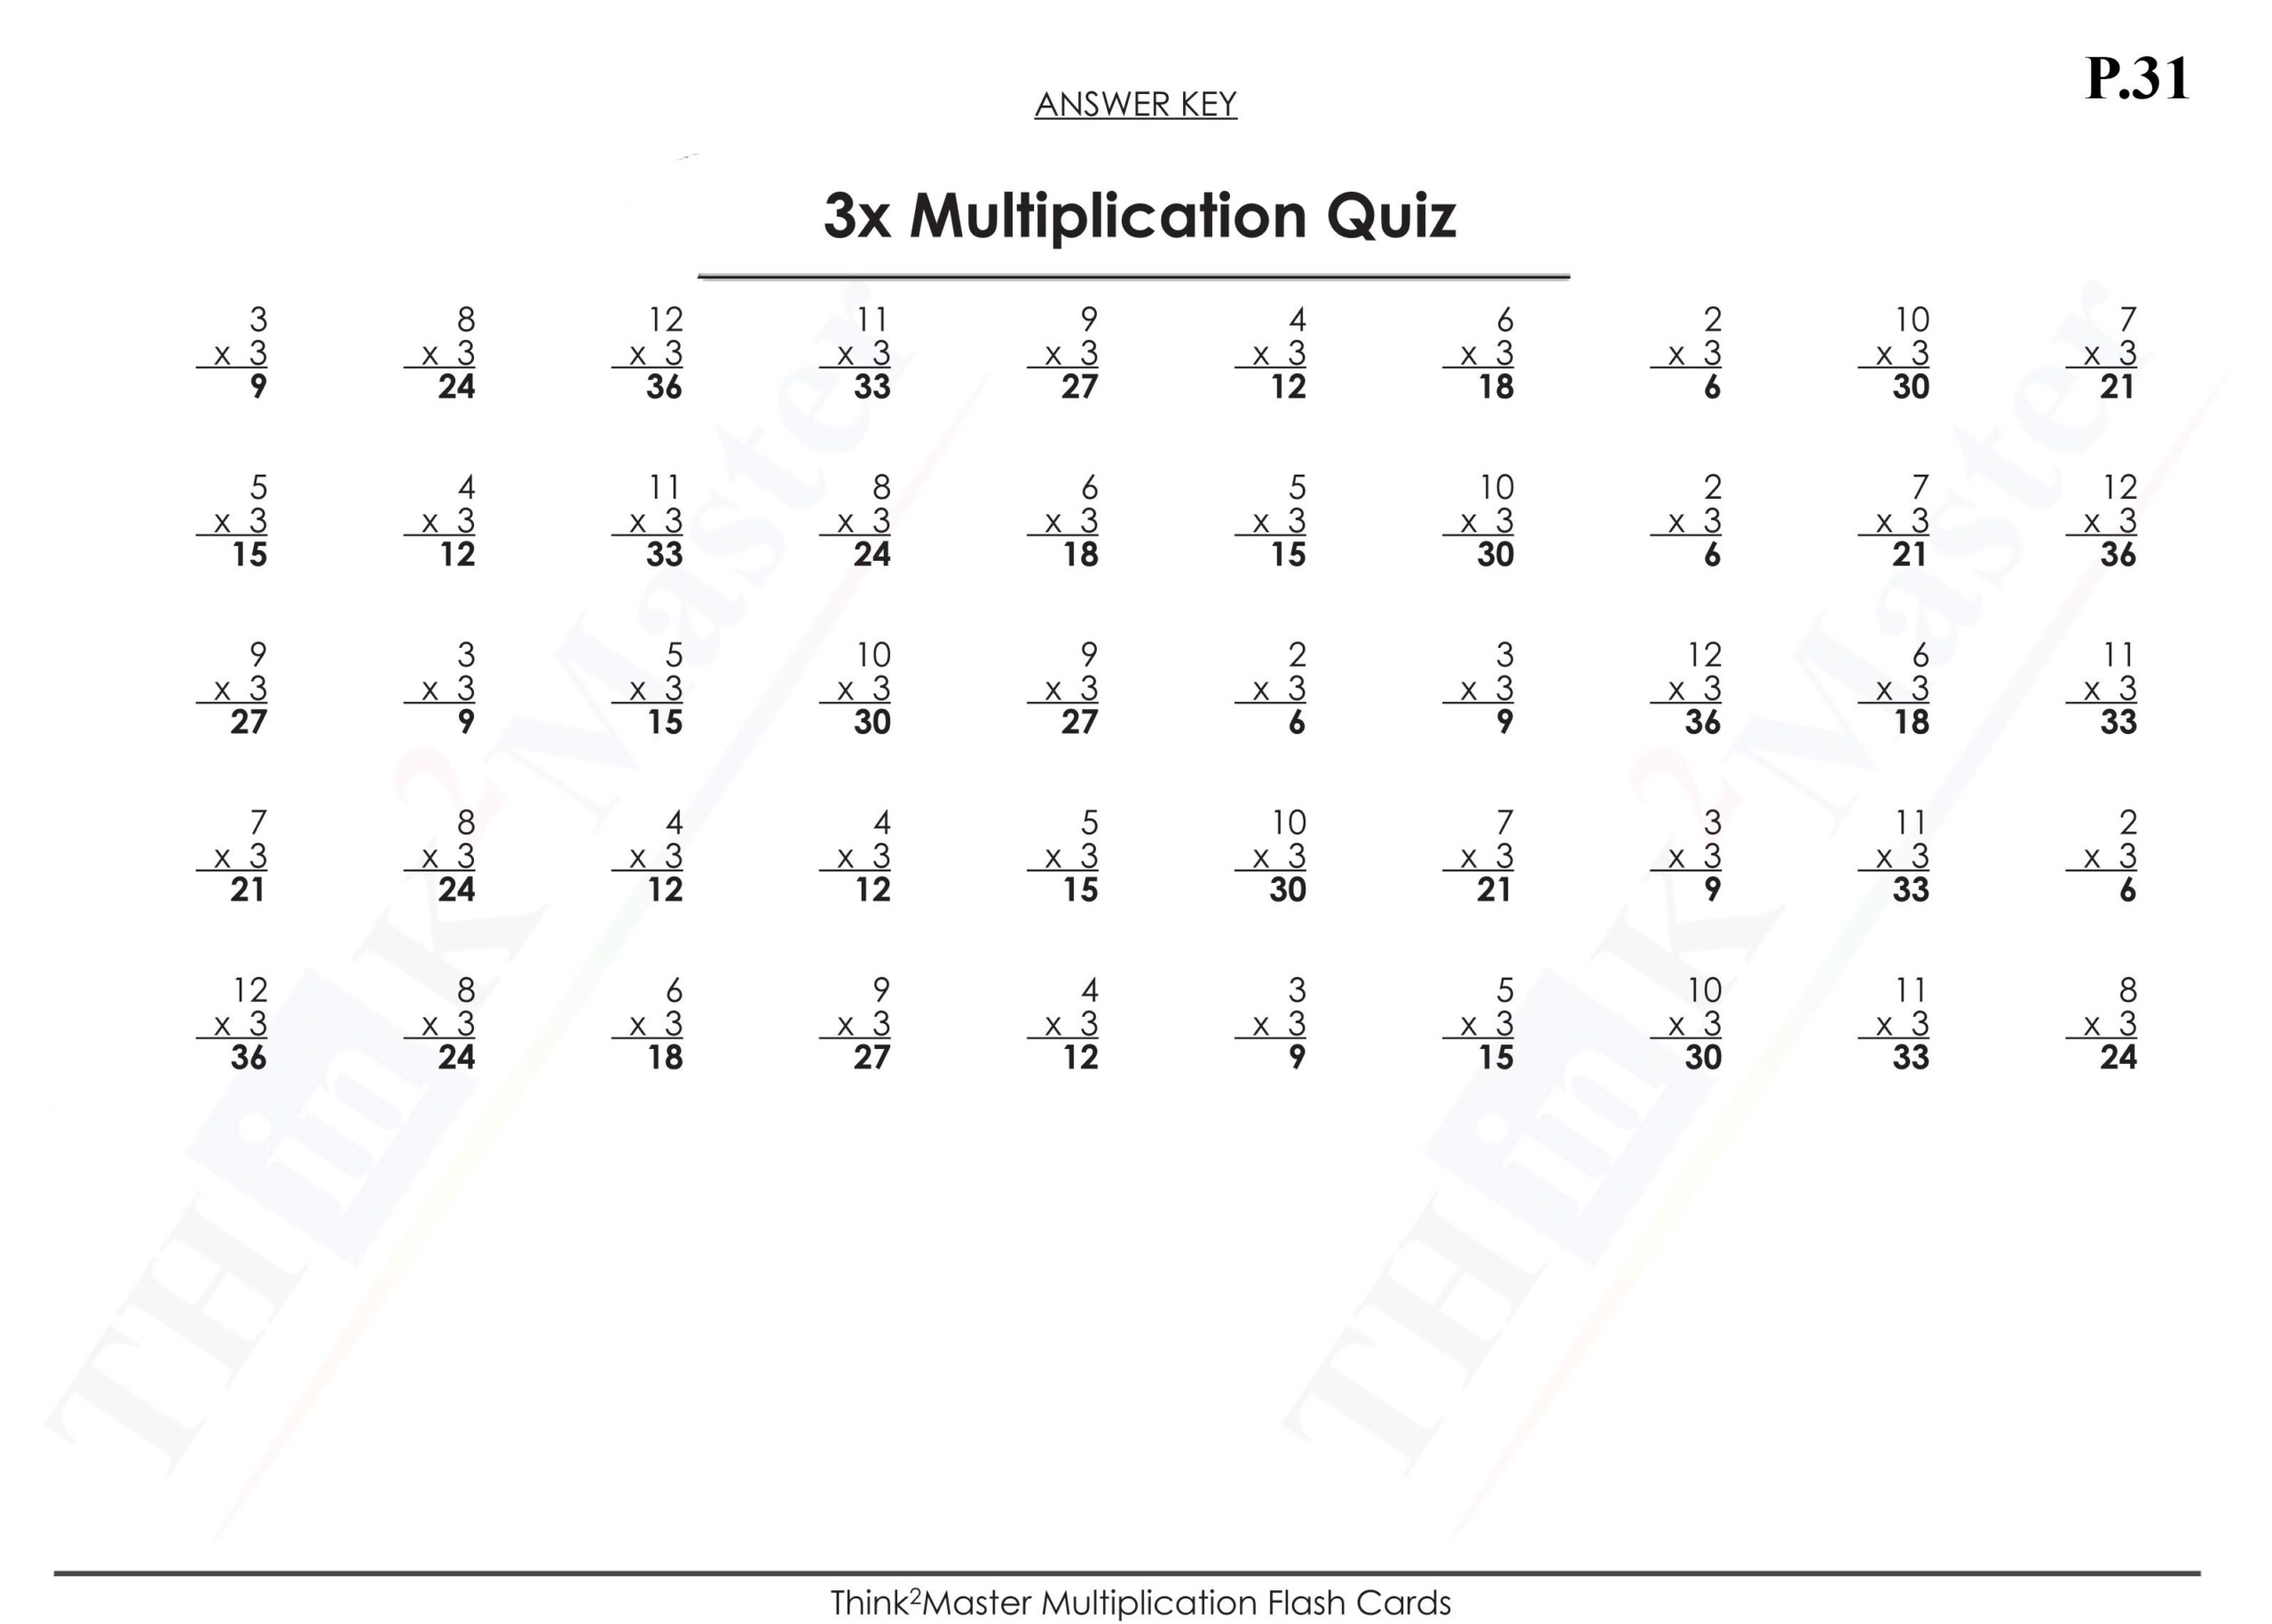 Free Printable 3X Multiplication Quiz Answers | Free regarding Printable Multiplication Quizzes 0-12